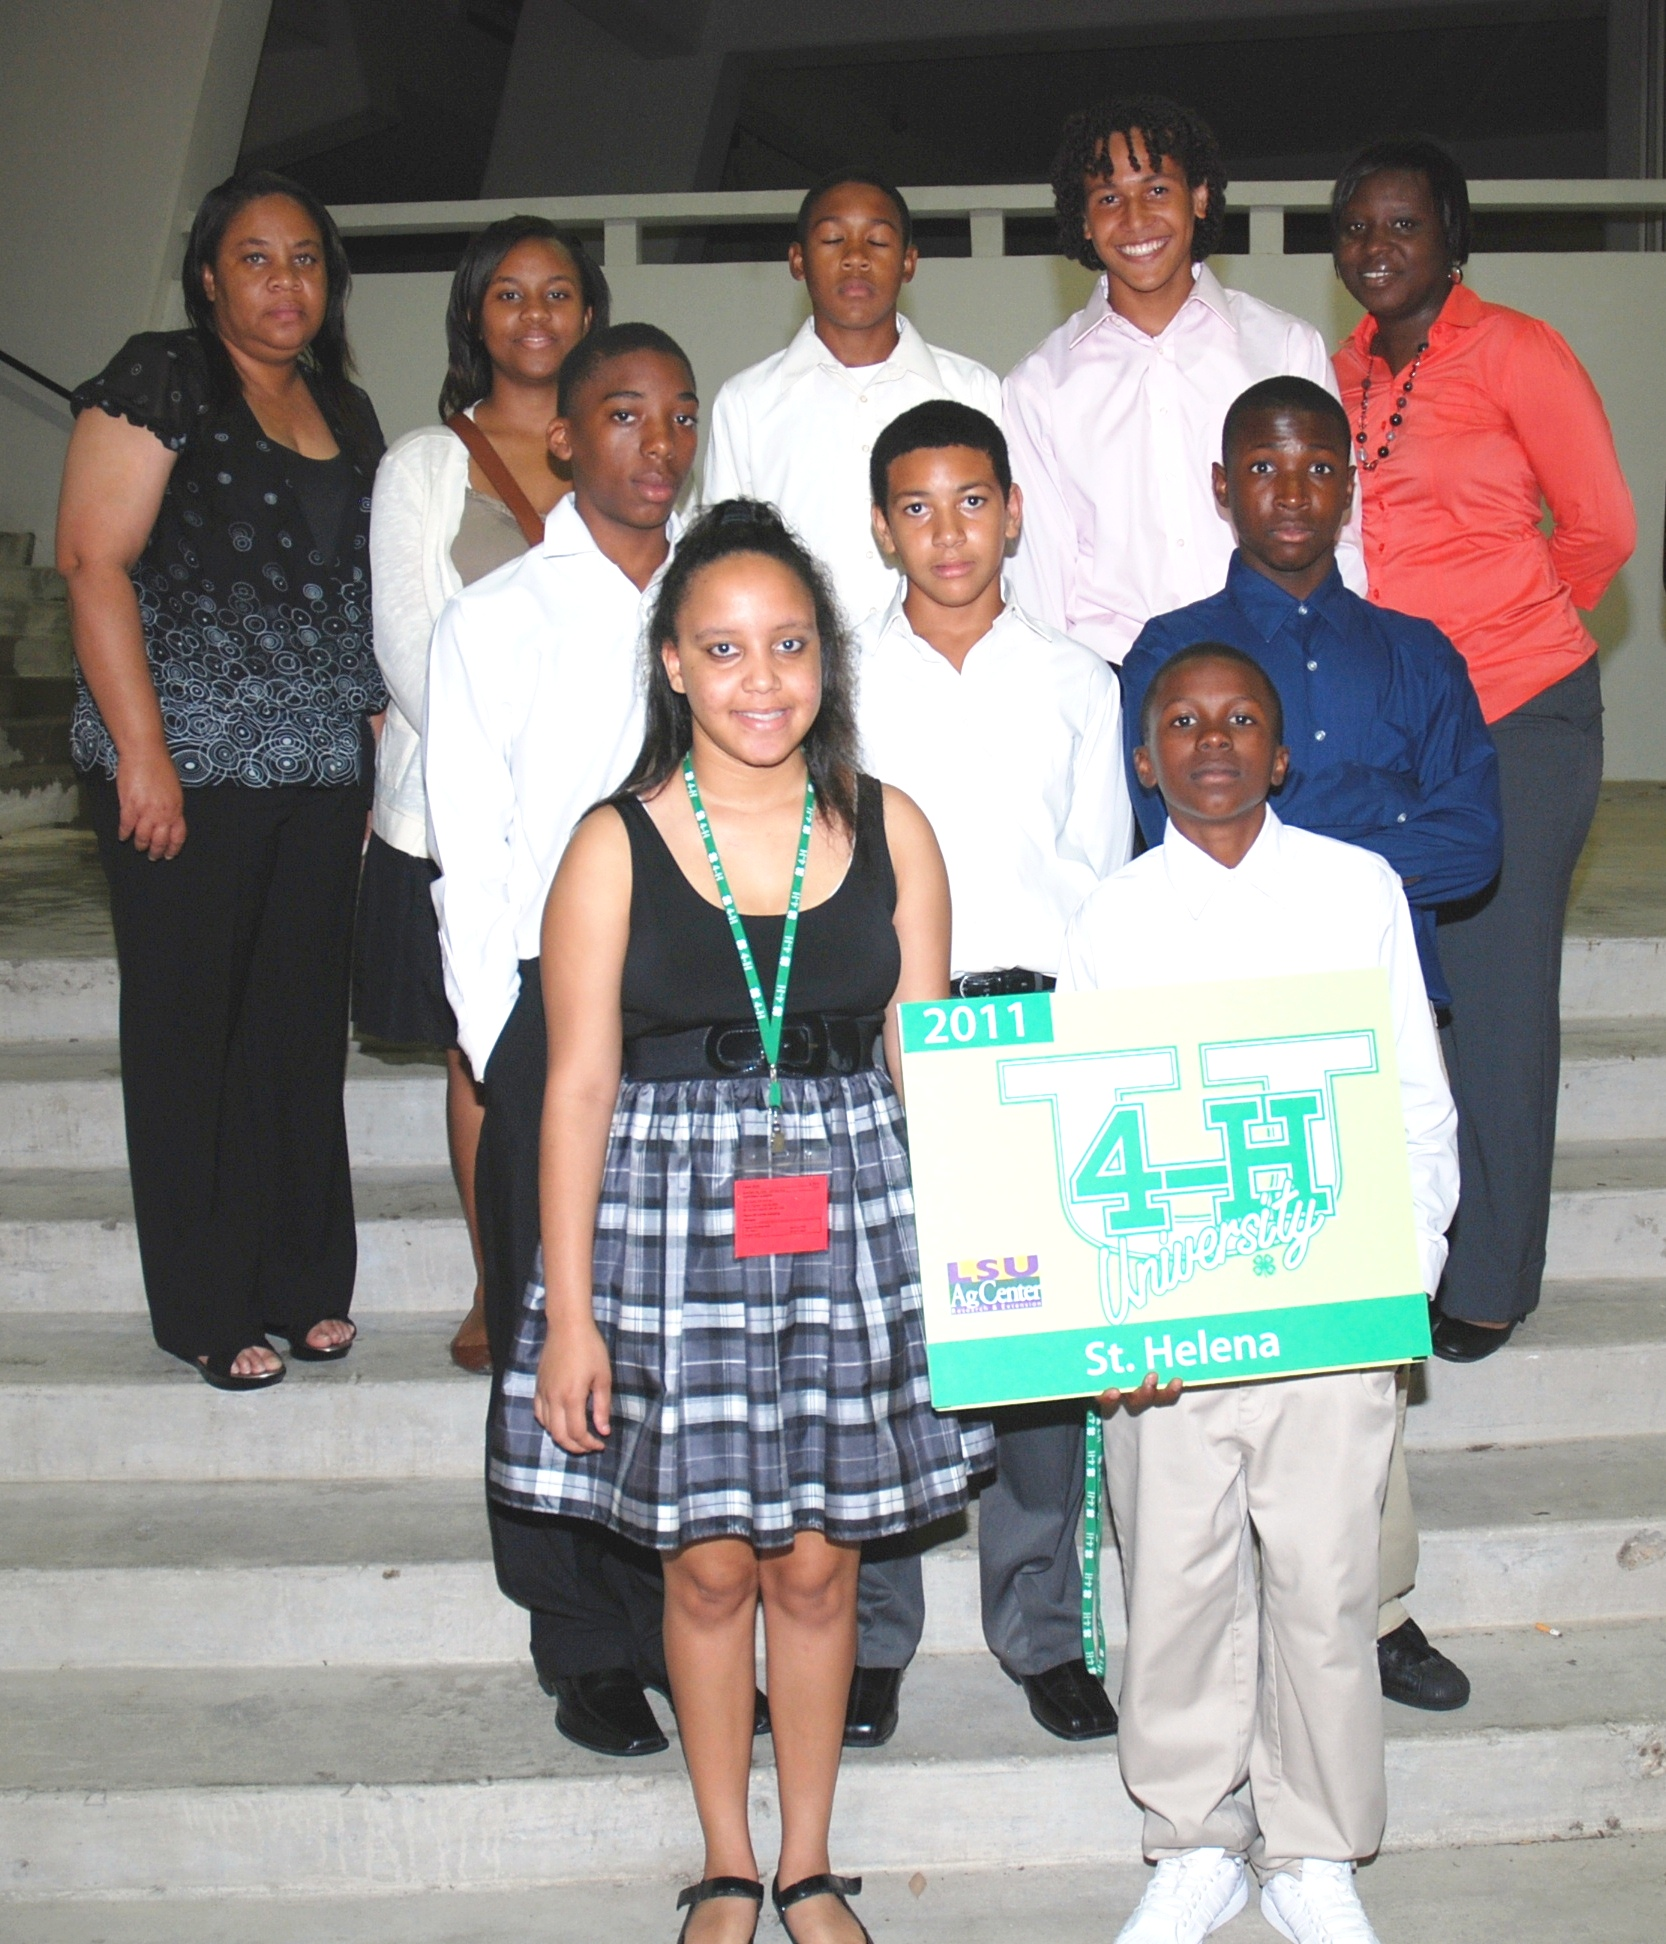 St. Helena participants at 4-H U